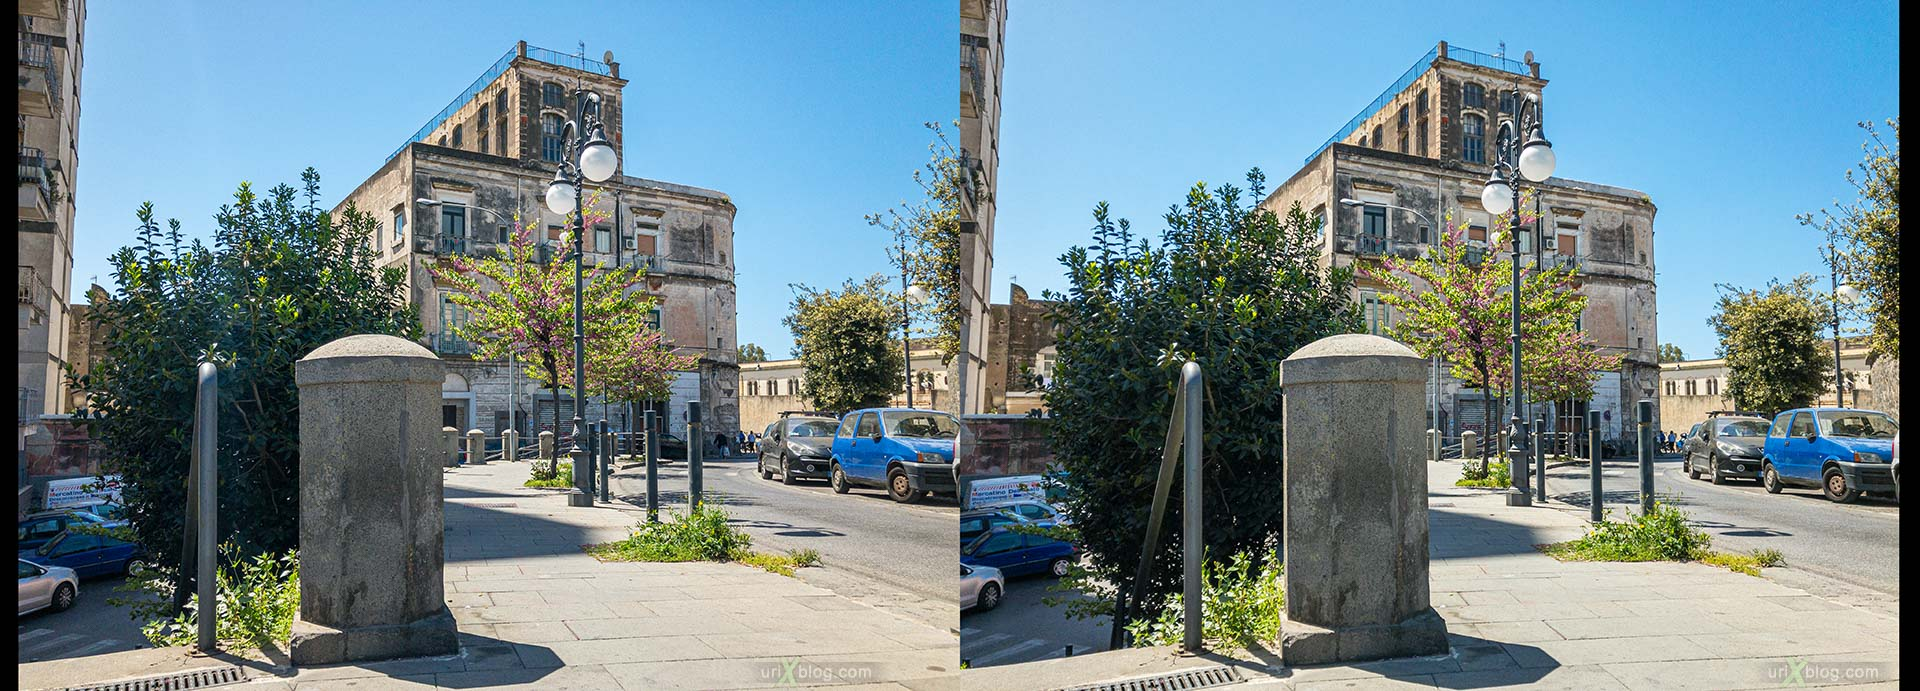 Torre Annunziata, Italy, 3D, stereo pair, cross-eyed, crossview, cross view stereo pair, stereoscopic